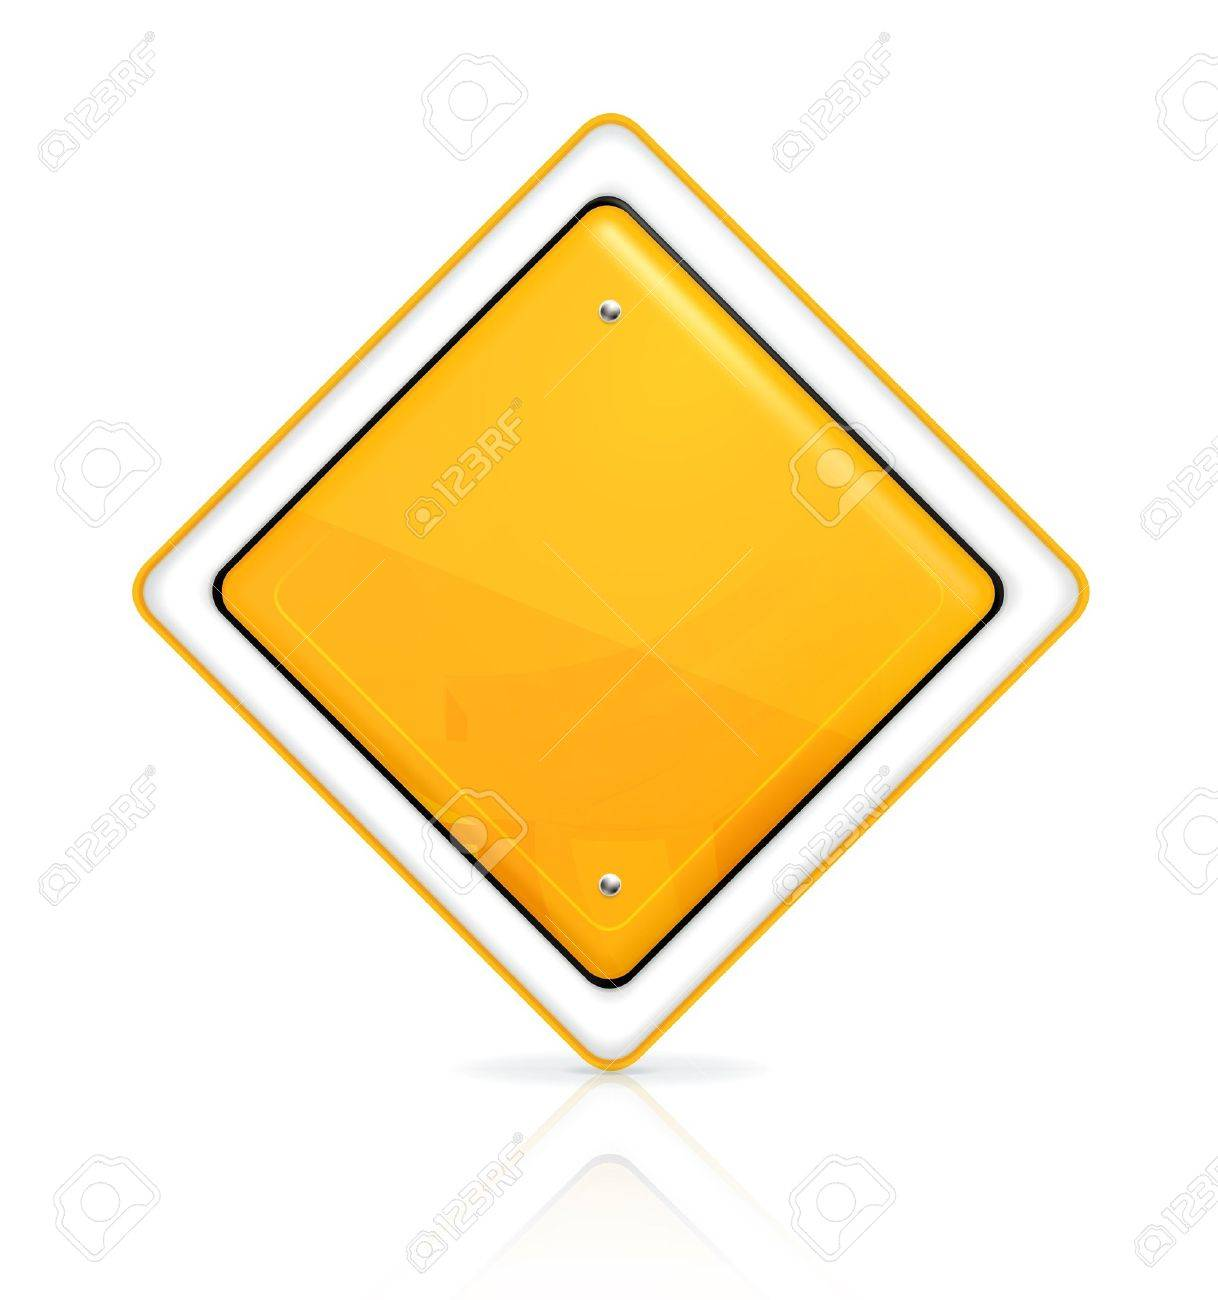 Priority road sign Stock Vector - 13898705